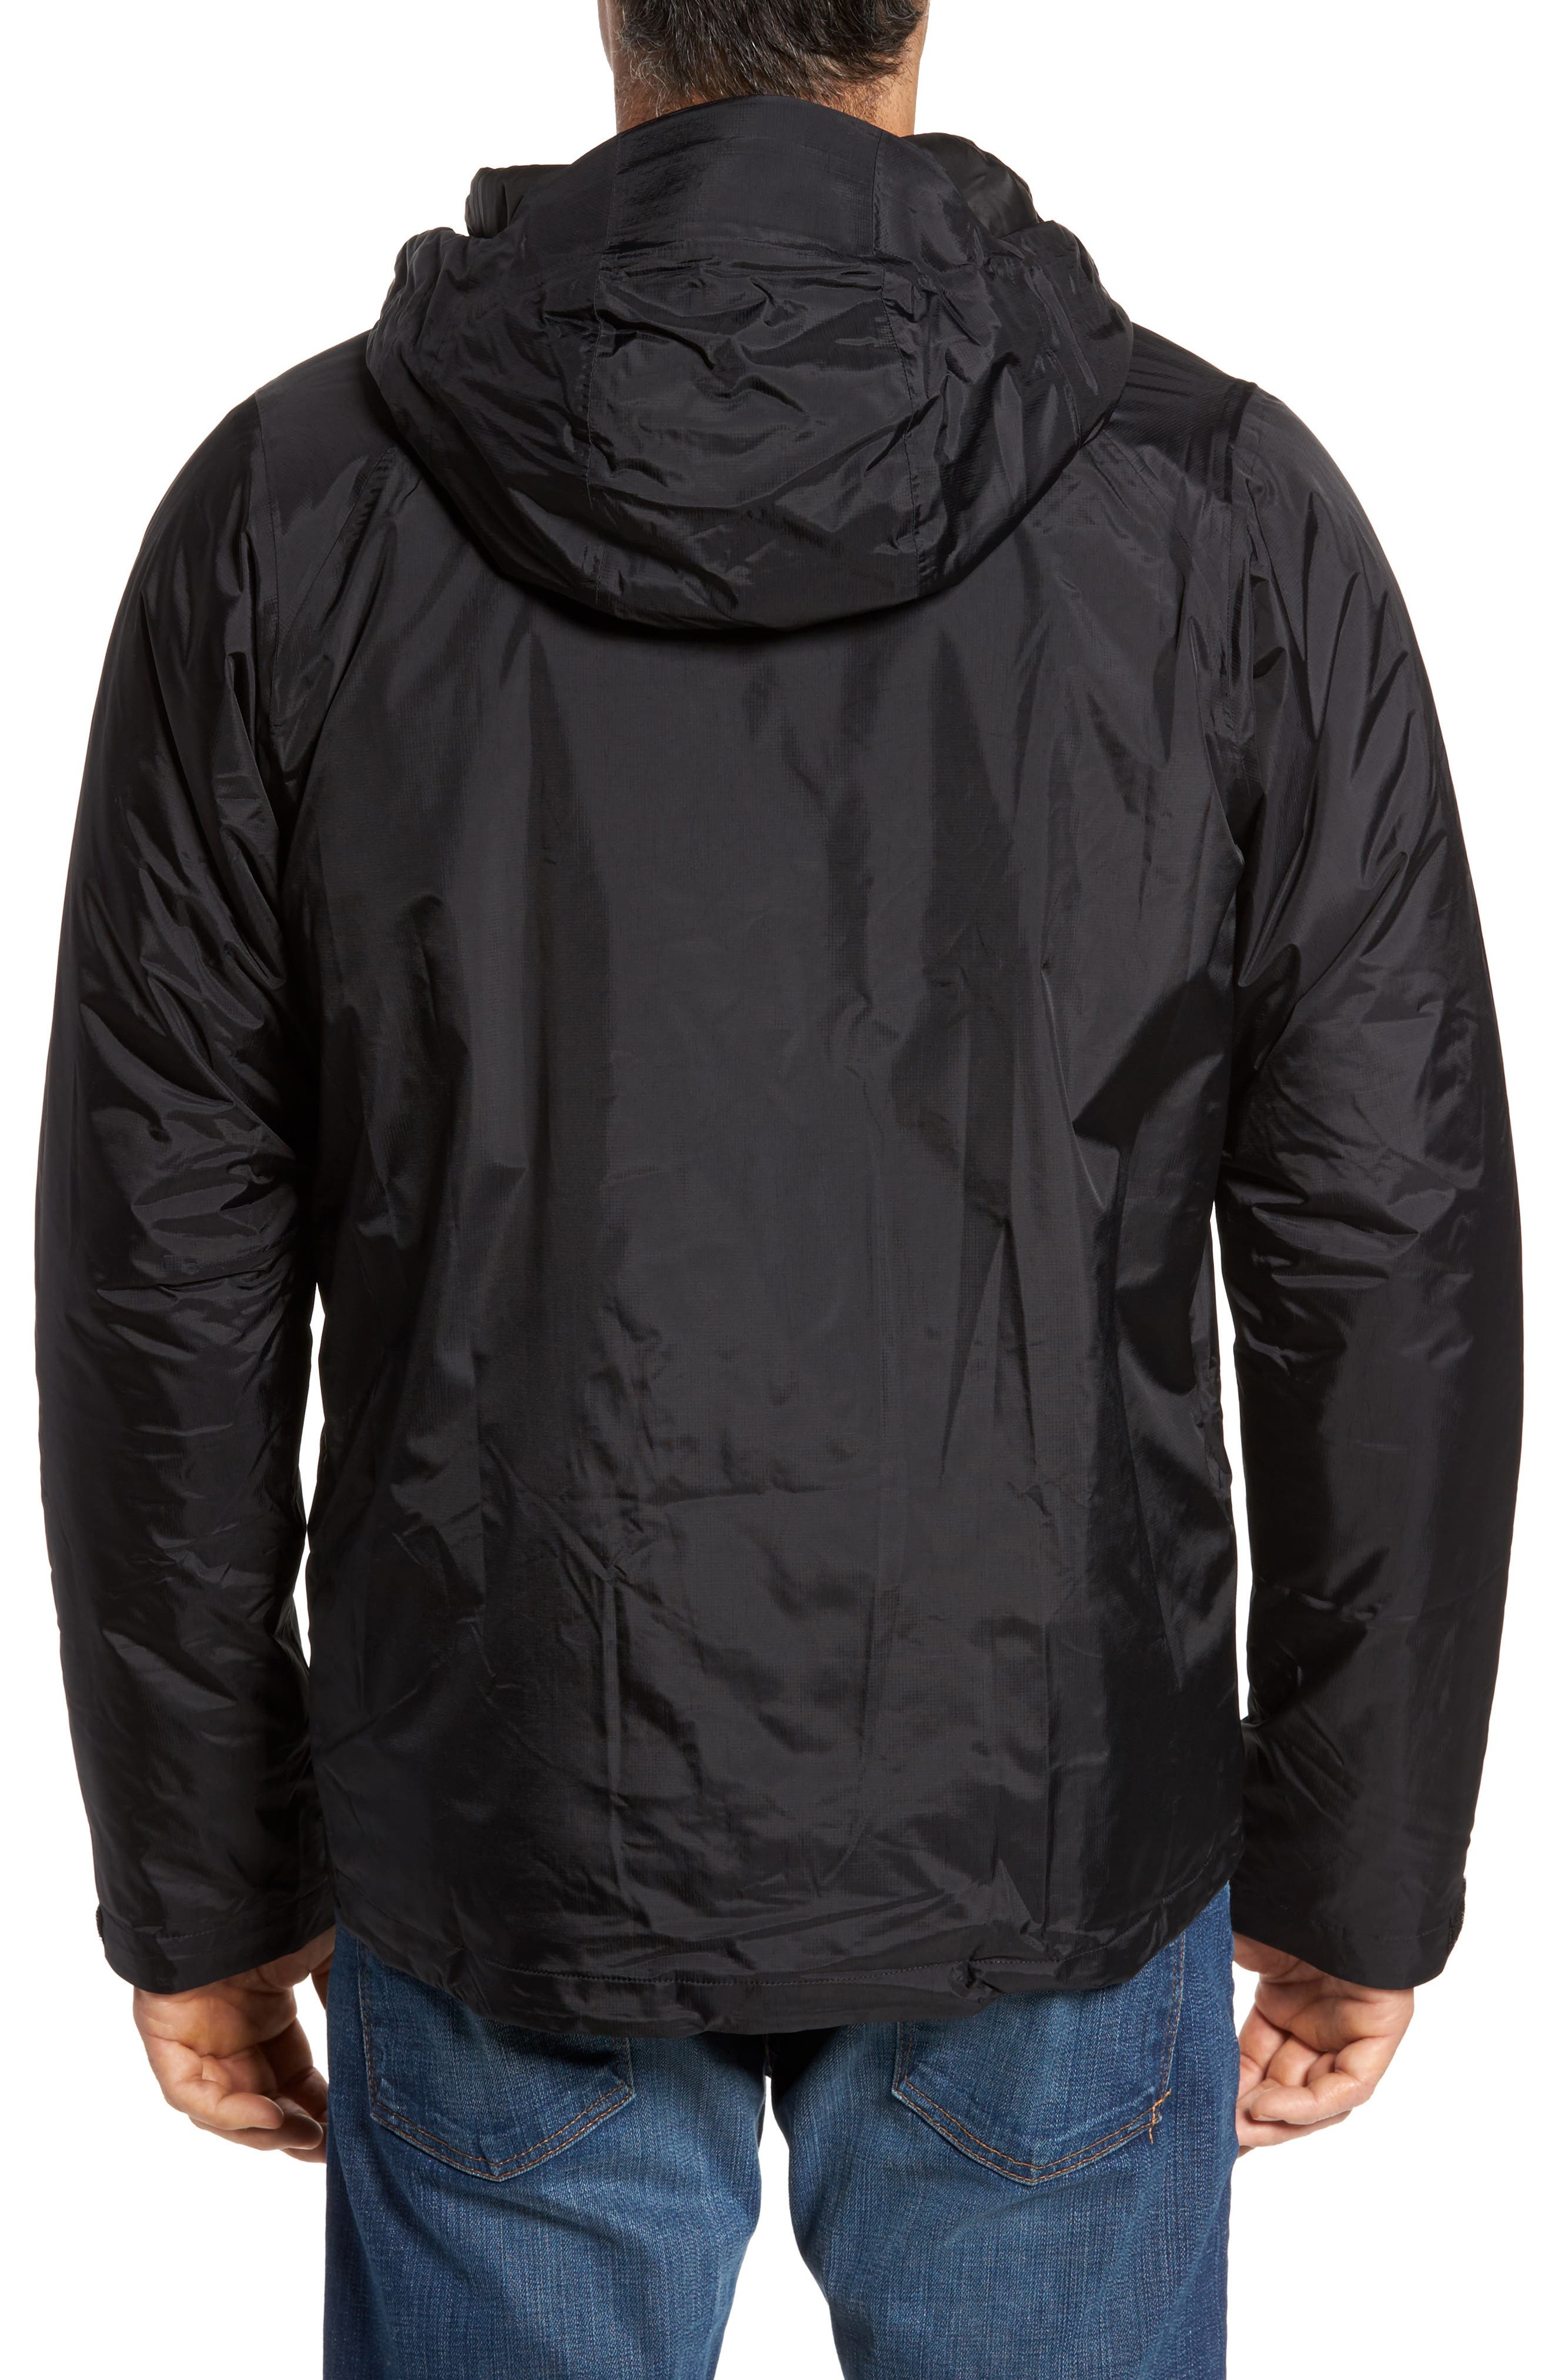 Torrentshell H2No<sup>®</sup> Packable Insulated Rain Jacket,                             Alternate thumbnail 2, color,                             Black